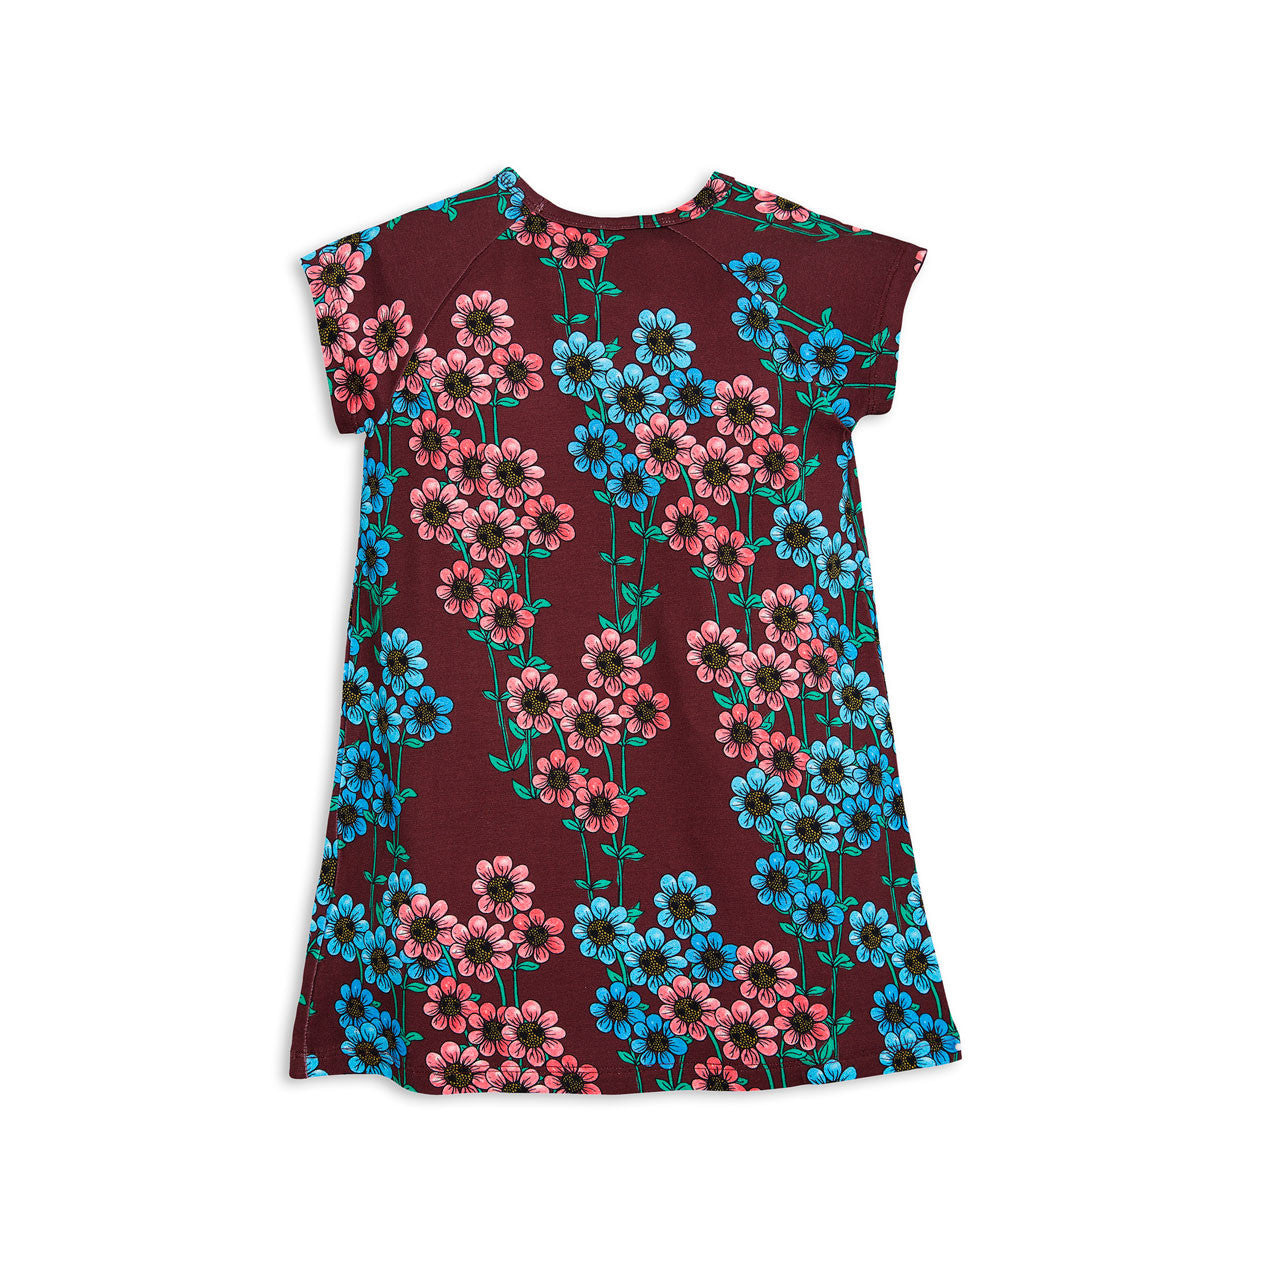 Mini Rodini Daisy SS Dress - Ladida